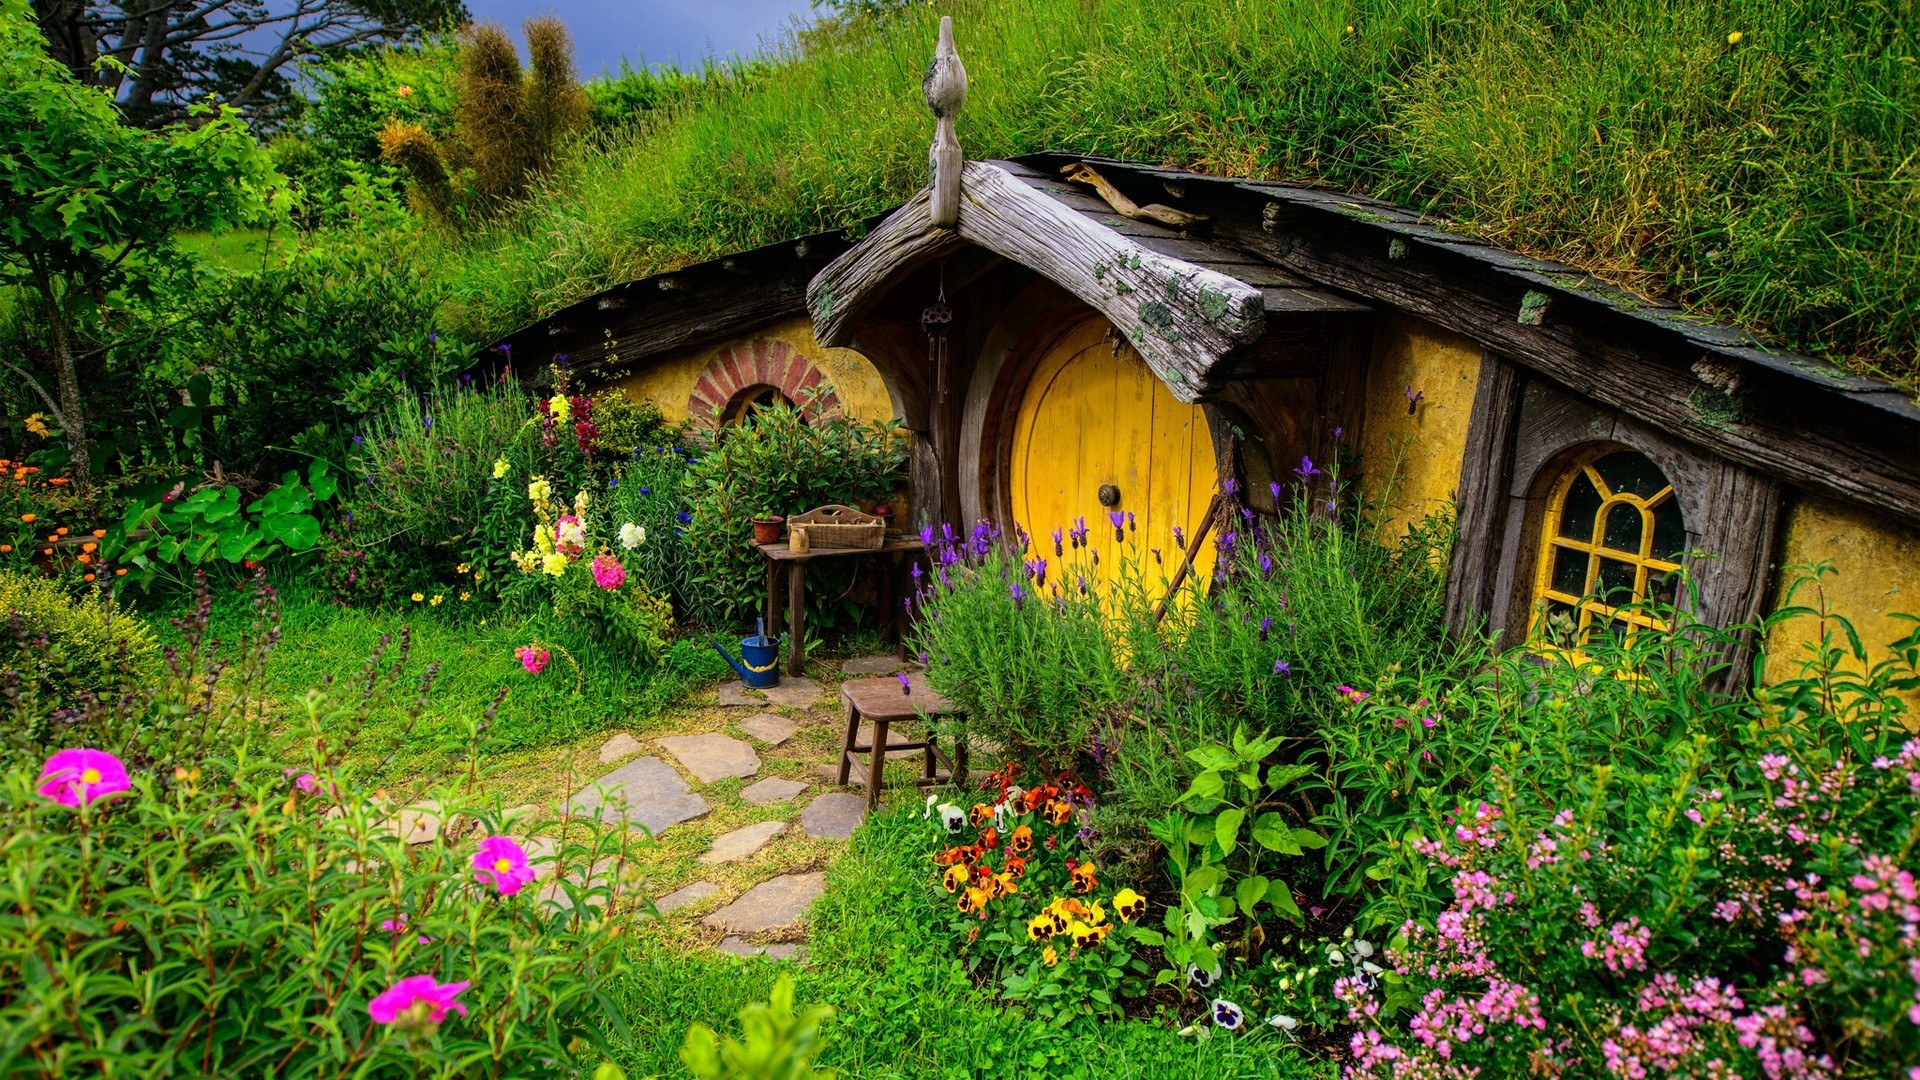 Image - Hobbit House.jpg | Middle Earth Roleplay Wiki | FANDOM ... on ocean homes, europe homes, moon homes, rivendell homes, pokemon homes, avalon homes, chinese farm homes, camelot homes, canada homes, maryland homes, love homes, hippie homes, brazil homes, hobbiton homes, shire homes, harry potter homes, paris homes, china homes, lord of the rings homes, south africa homes,